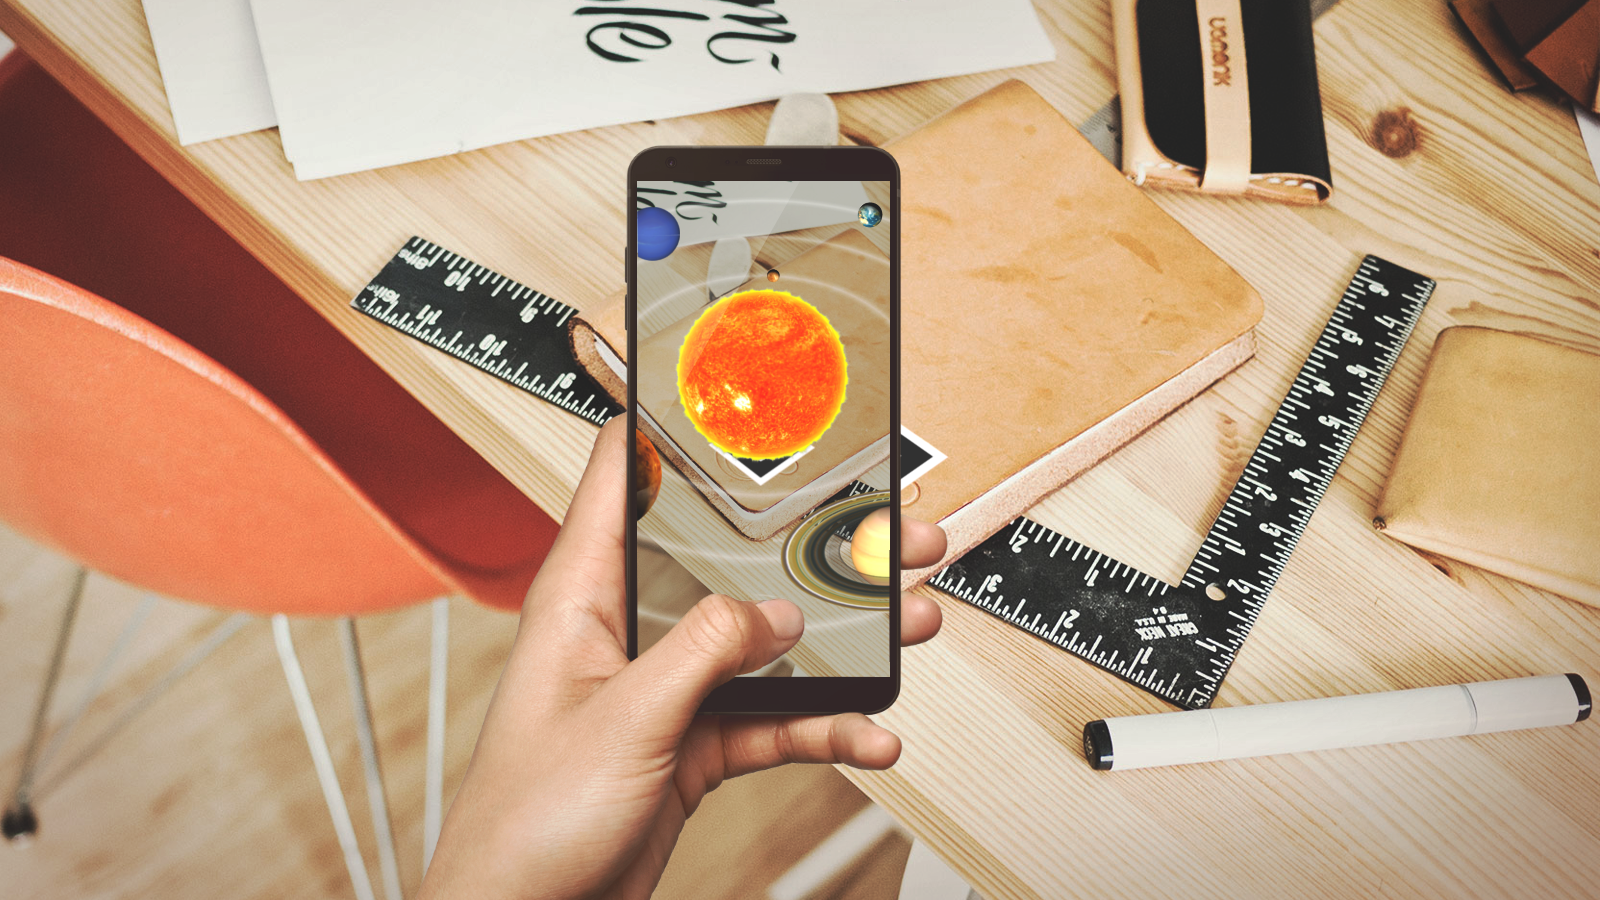 Solar System AR preview